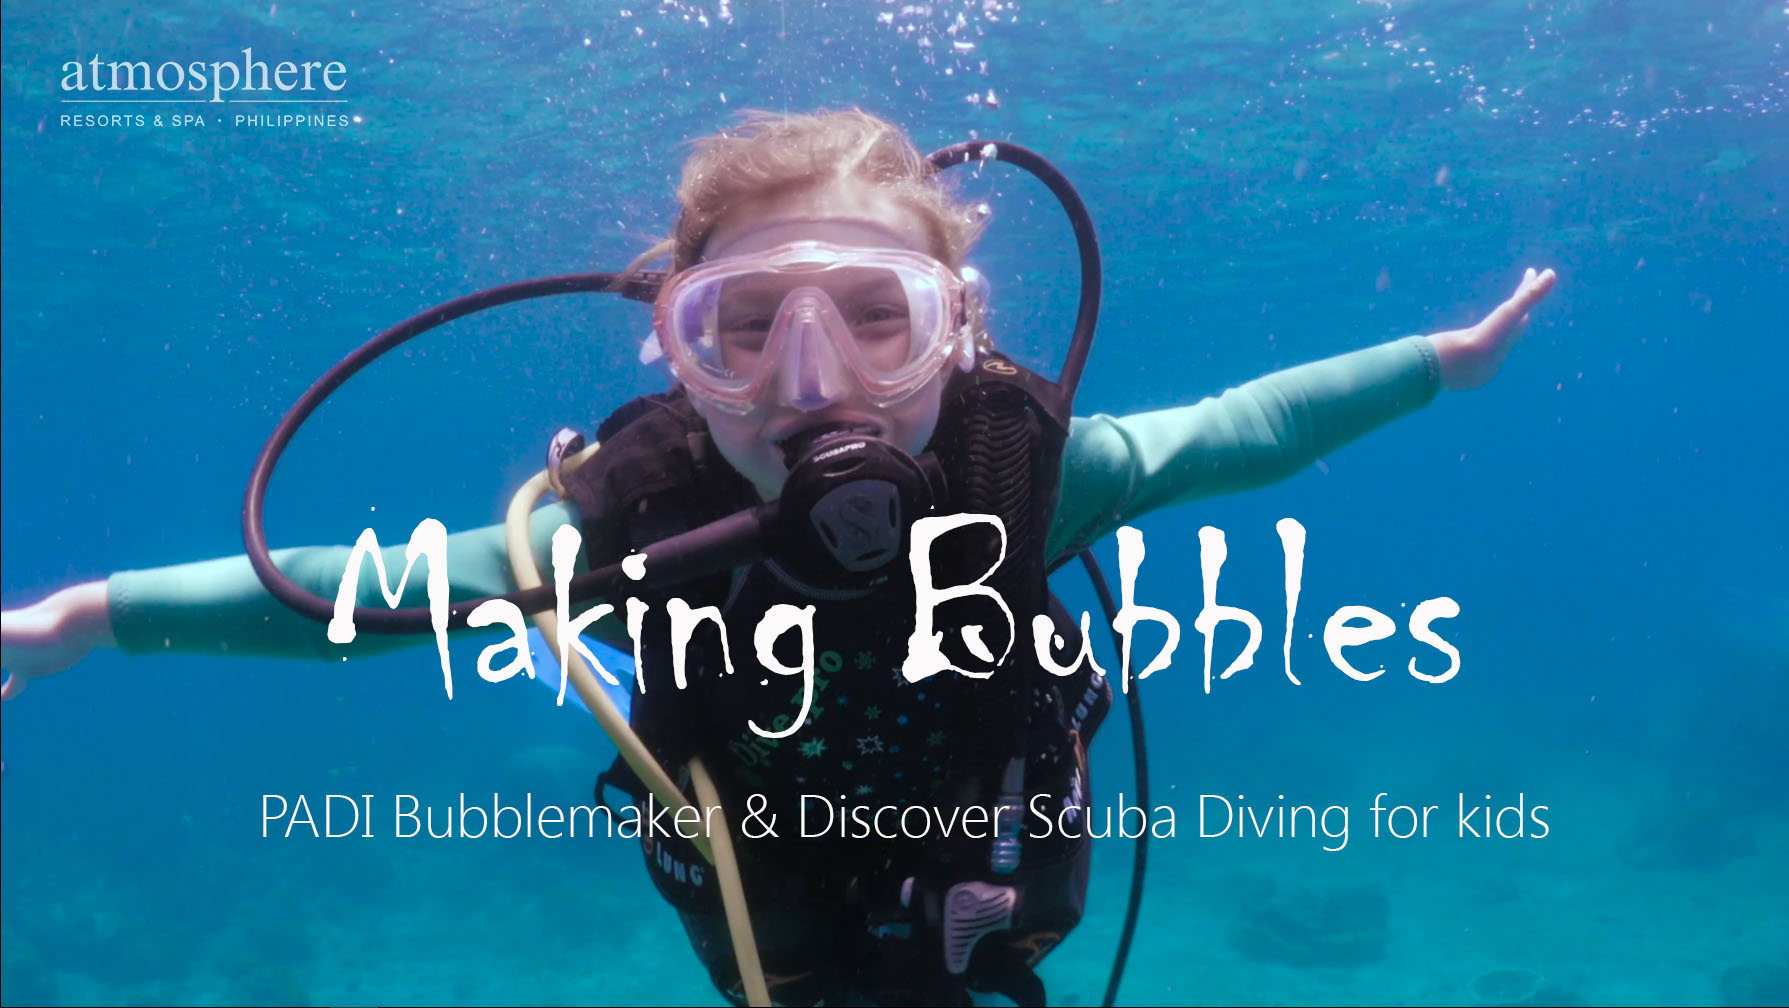 PADI Bubblemaker and Discover Scuba experience at Atmosphere